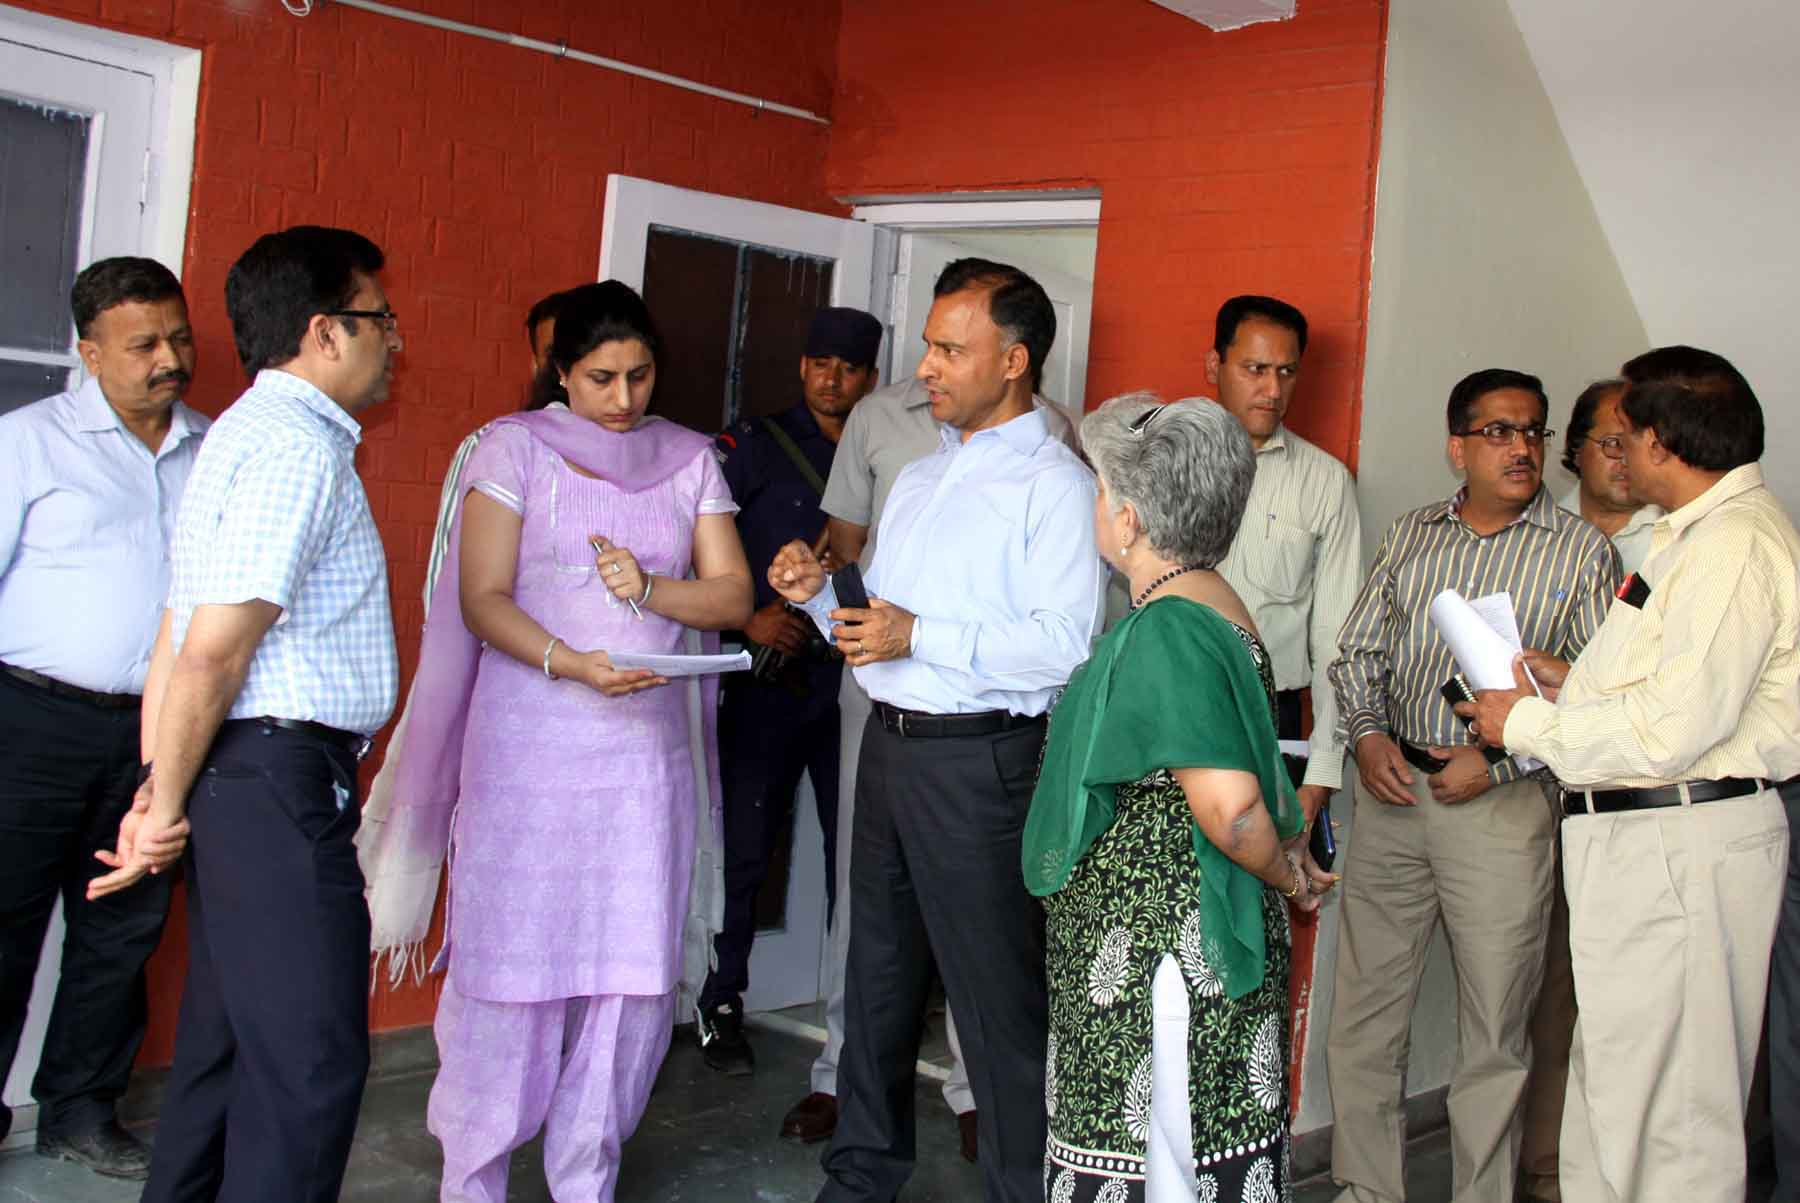 The Adviser to the Administrator, UT, Chandigarh, Mr. Vijay Dev alongwith senior officers visiting at Nari Niketan, Sector-26, Chandigarh on Thursday, April 23, 2015.